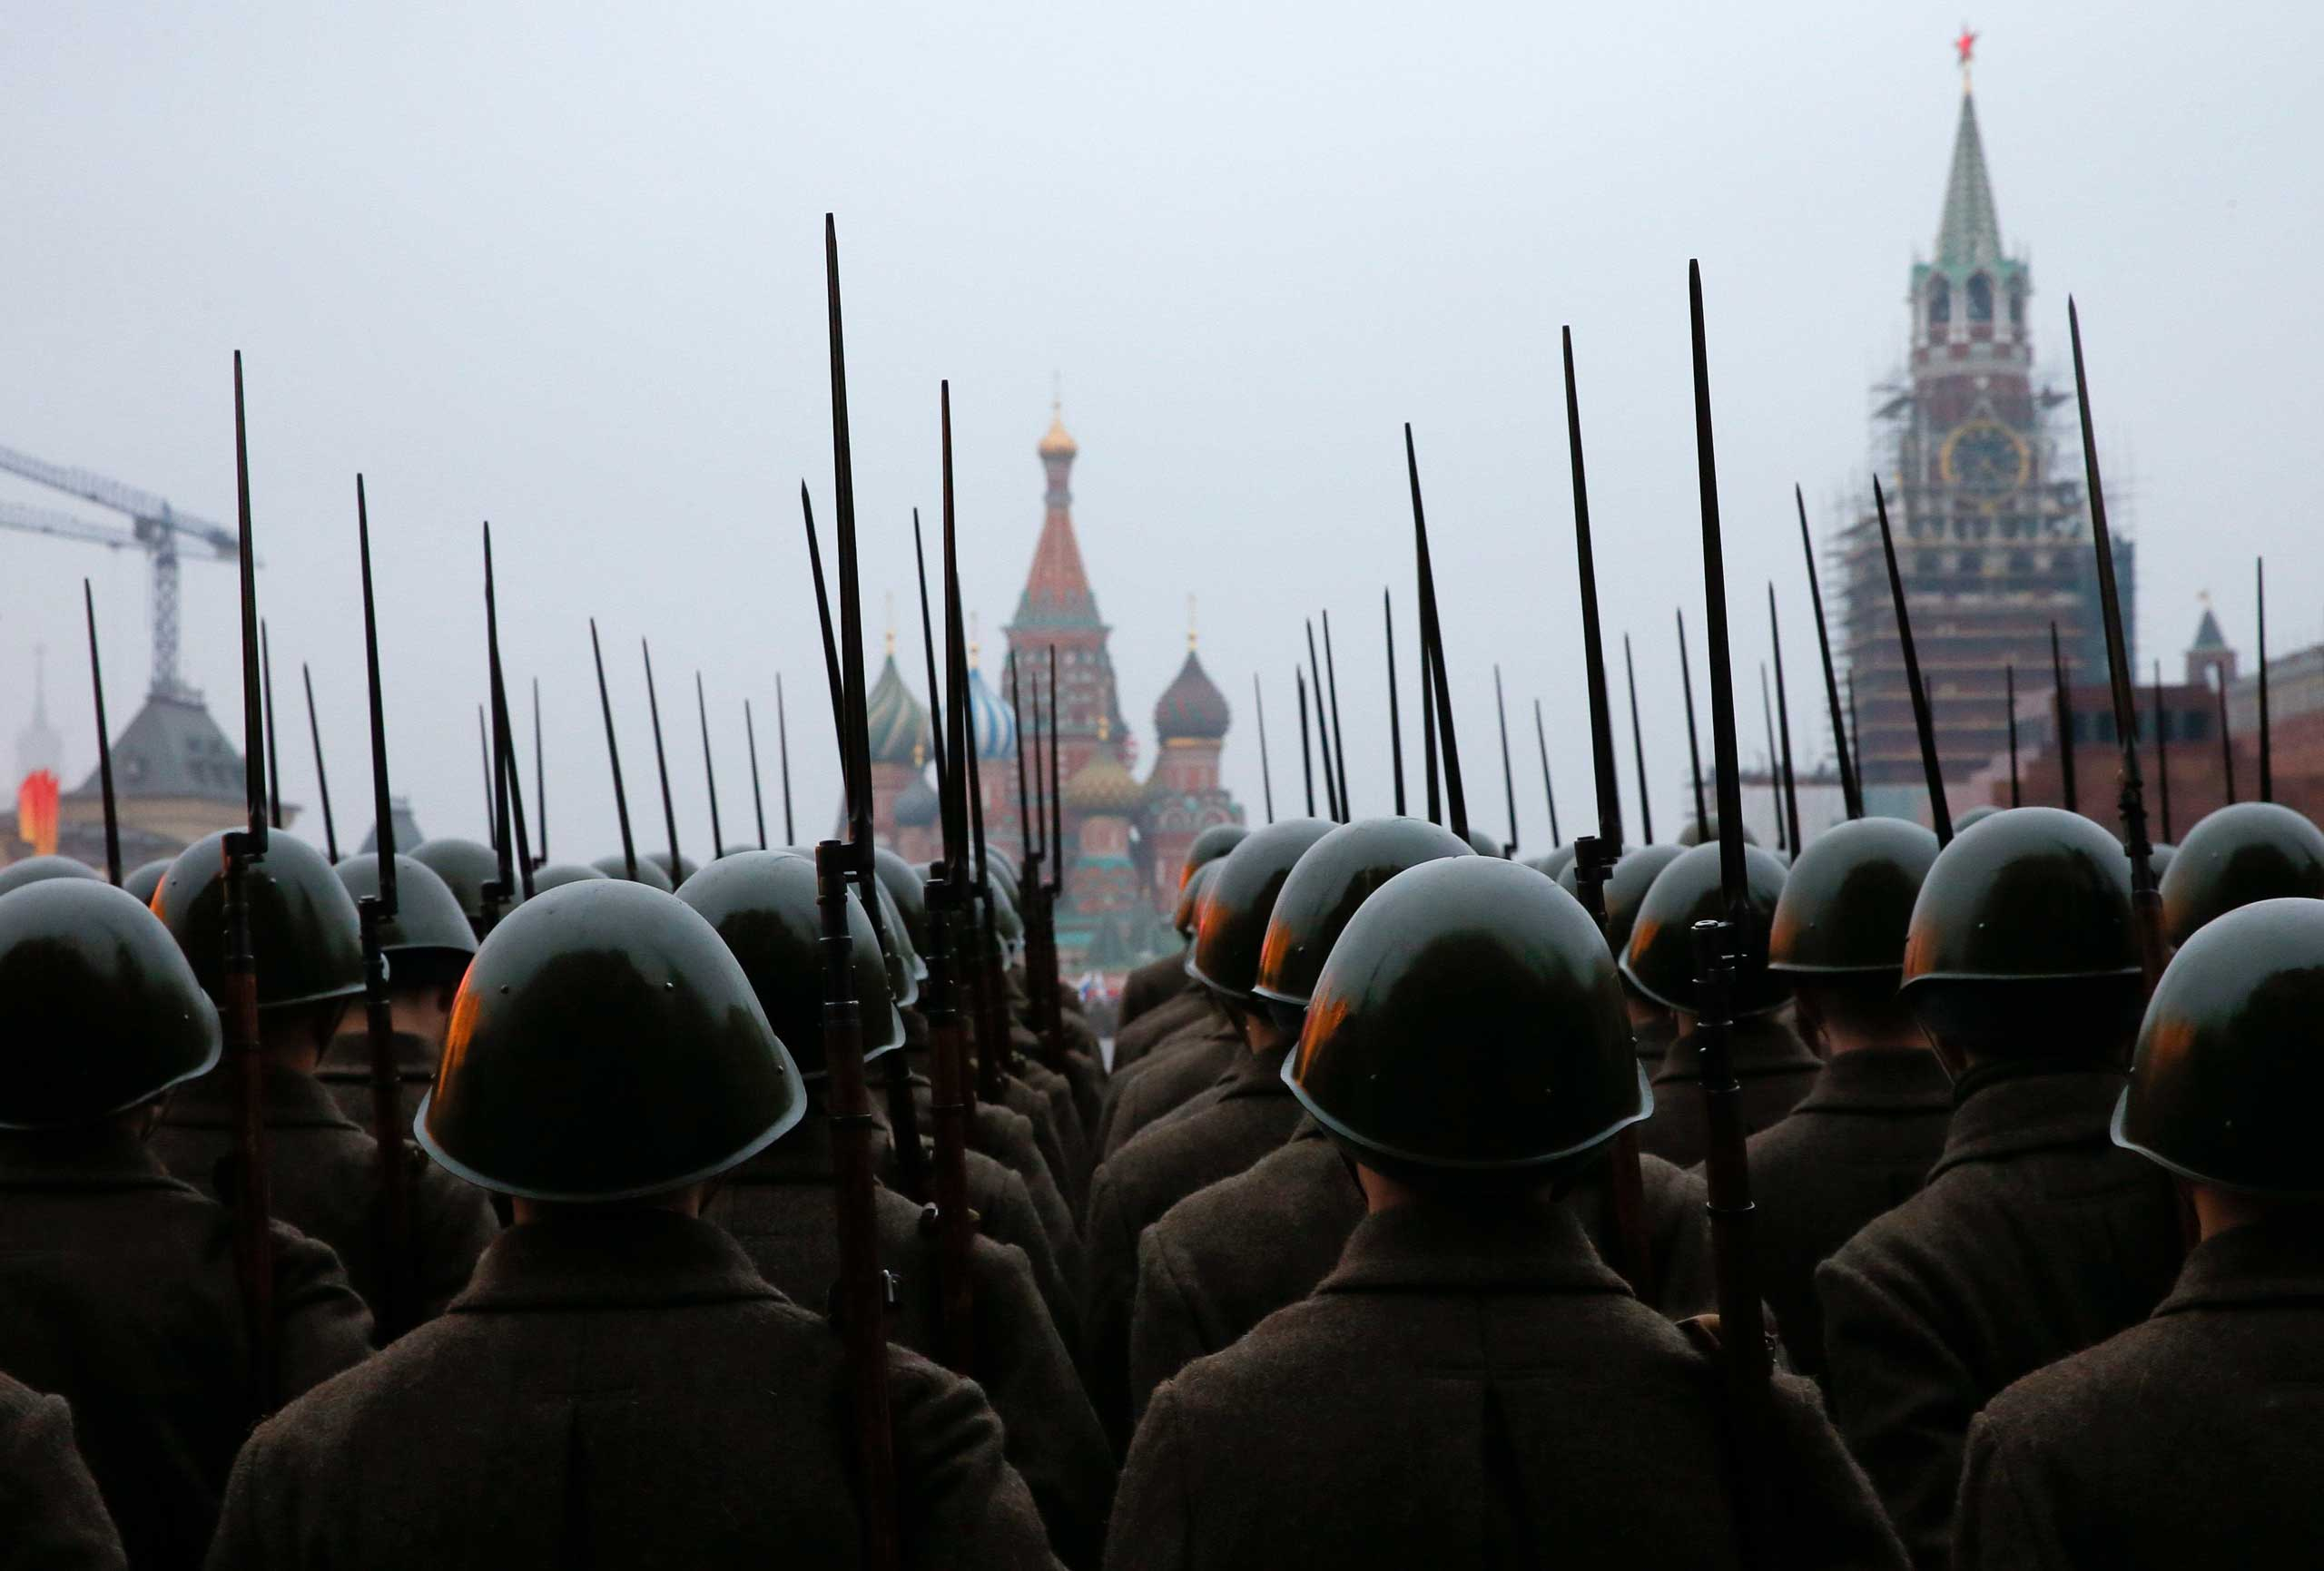 Nov. 5, 2014. Russian servicemen dressed in historical uniforms take part in a rehearsal for a military parade at the Red Square in Moscow.  The parade will be held on Nov. 7 to mark the anniversary of a historical parade in 1941, when Soviet soldiers marched through the Red Square towards the front lines of World War II.